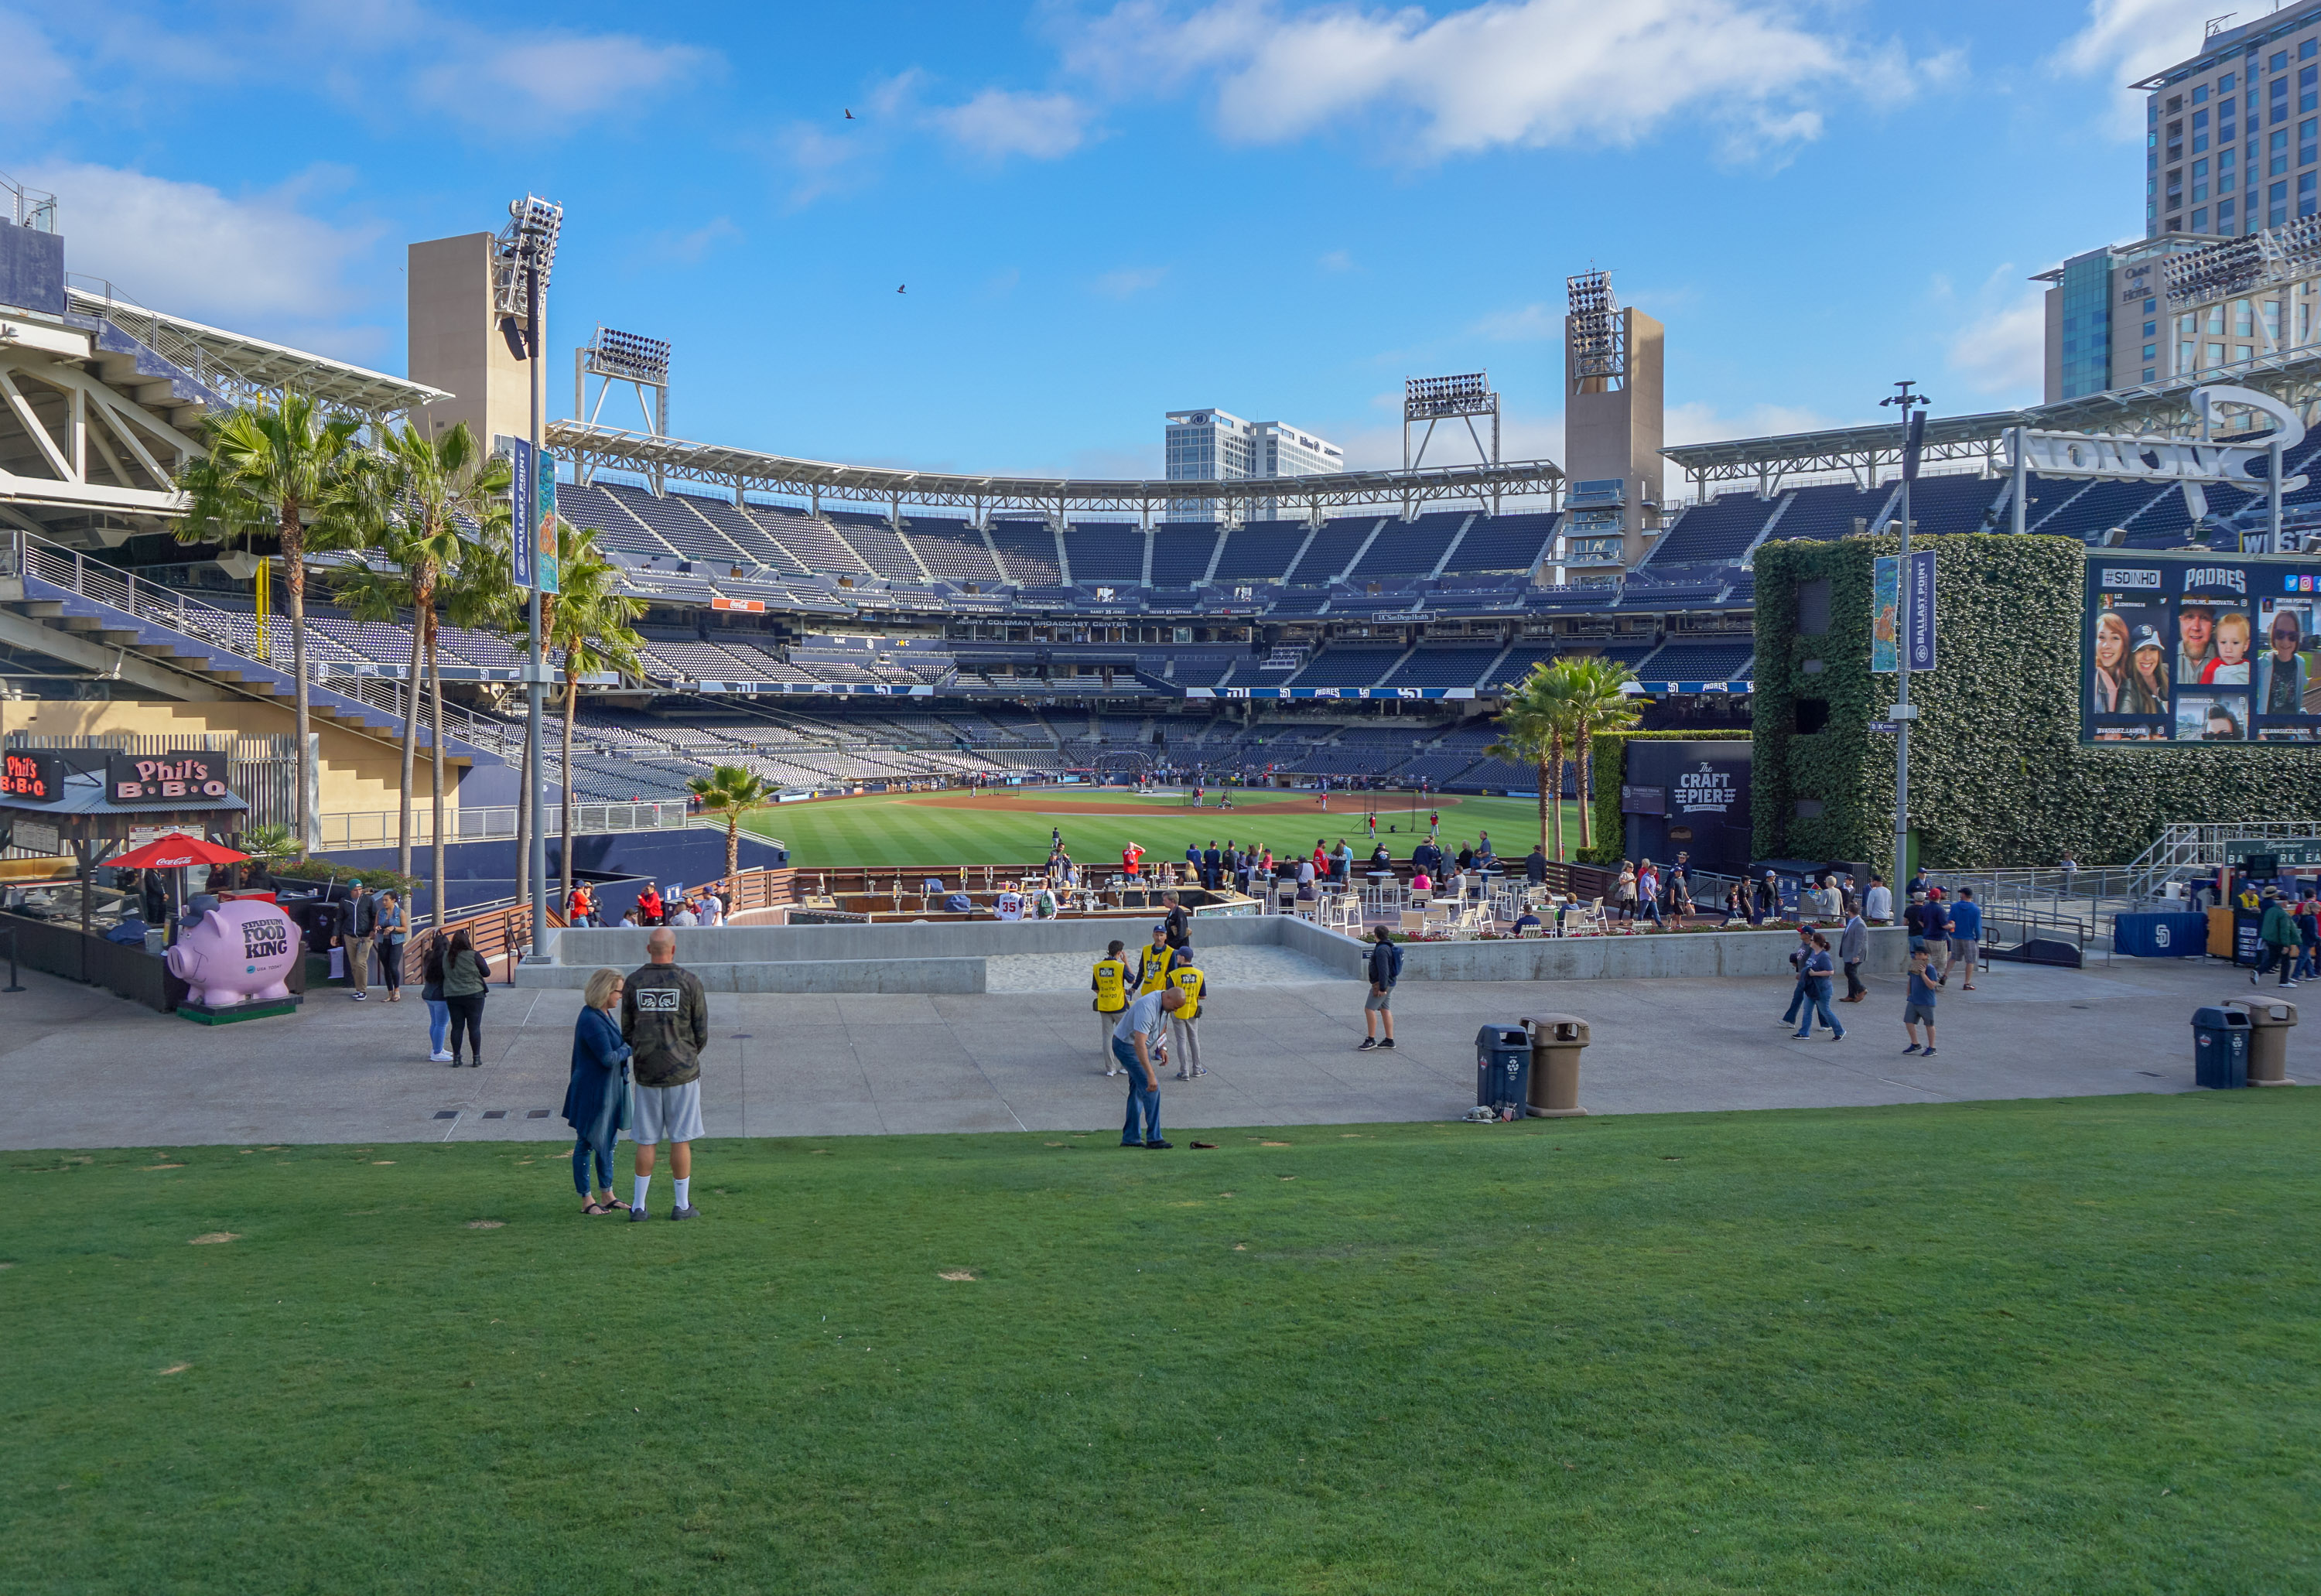 Guide To Padres Games At Petco Park For Casual Fans La Jolla Mom